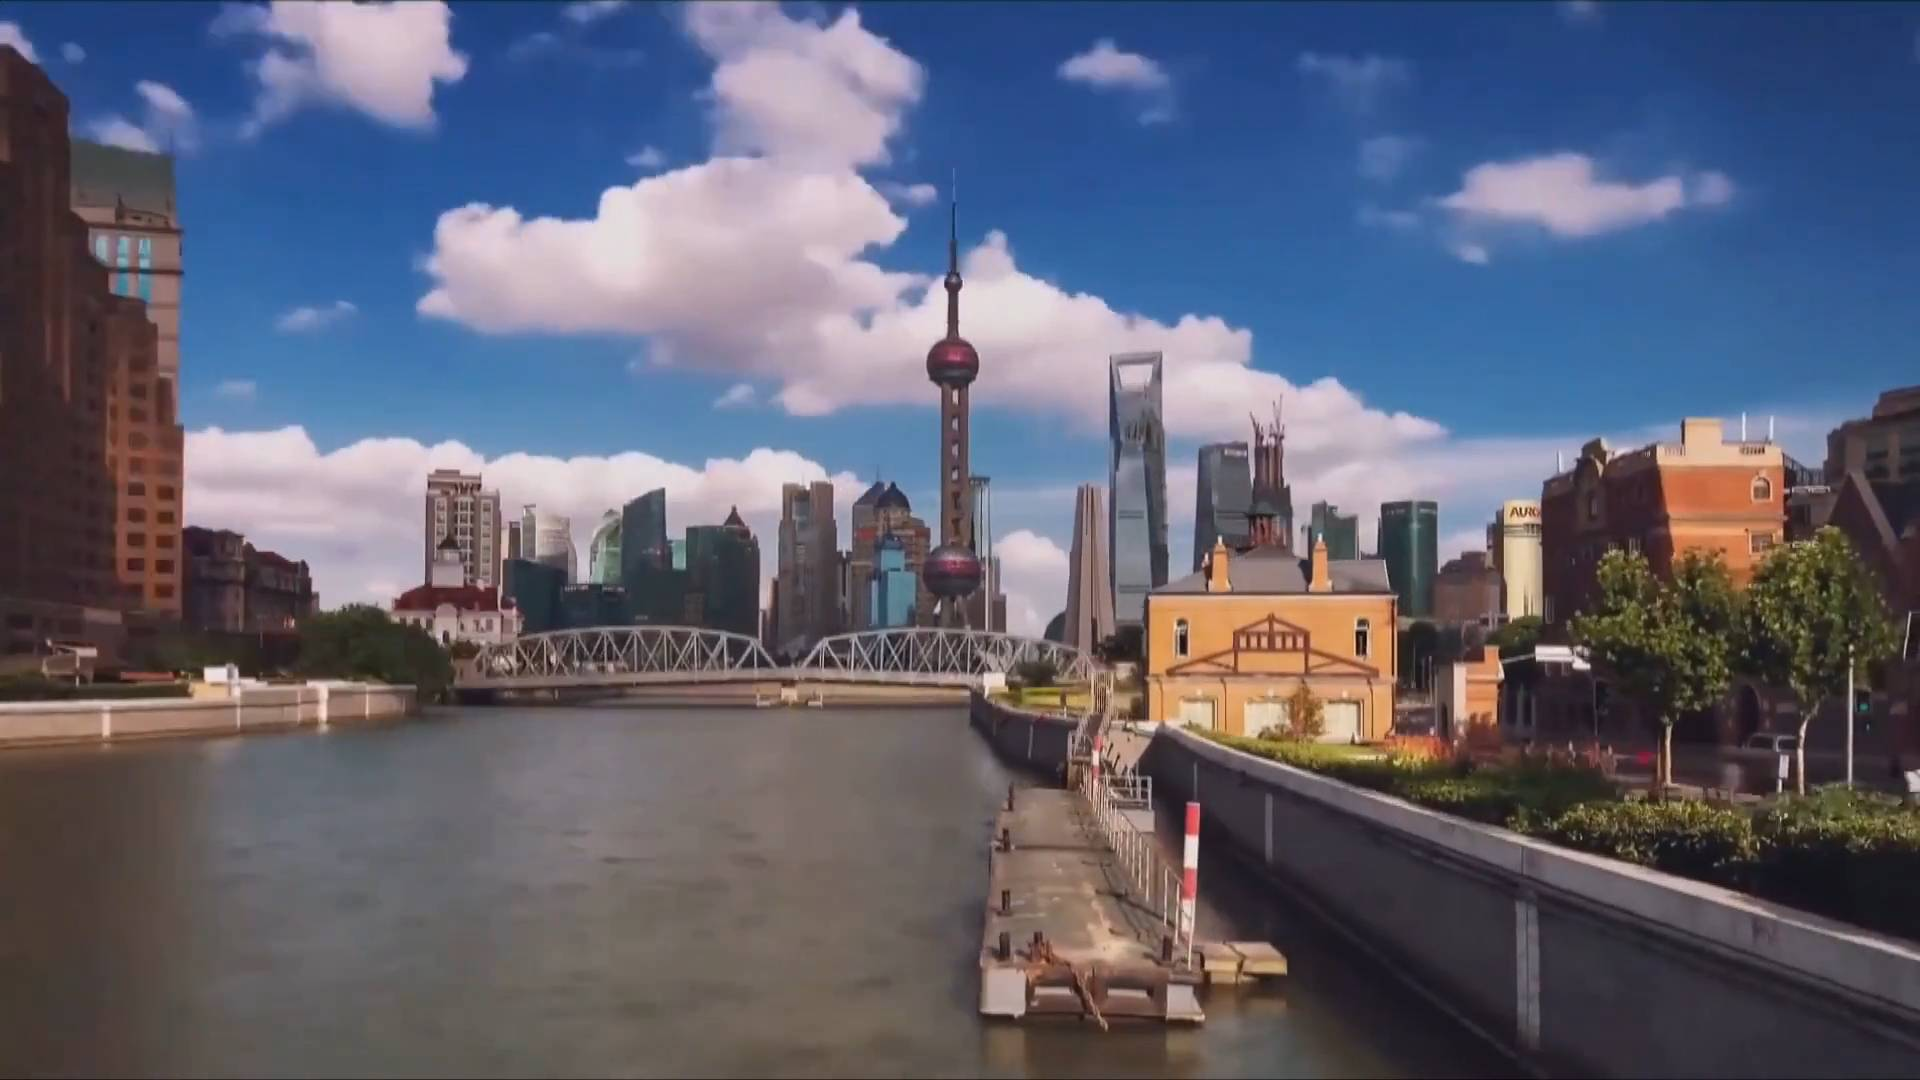 GLOBALink | What do exhibitors say about this year's China import expo?